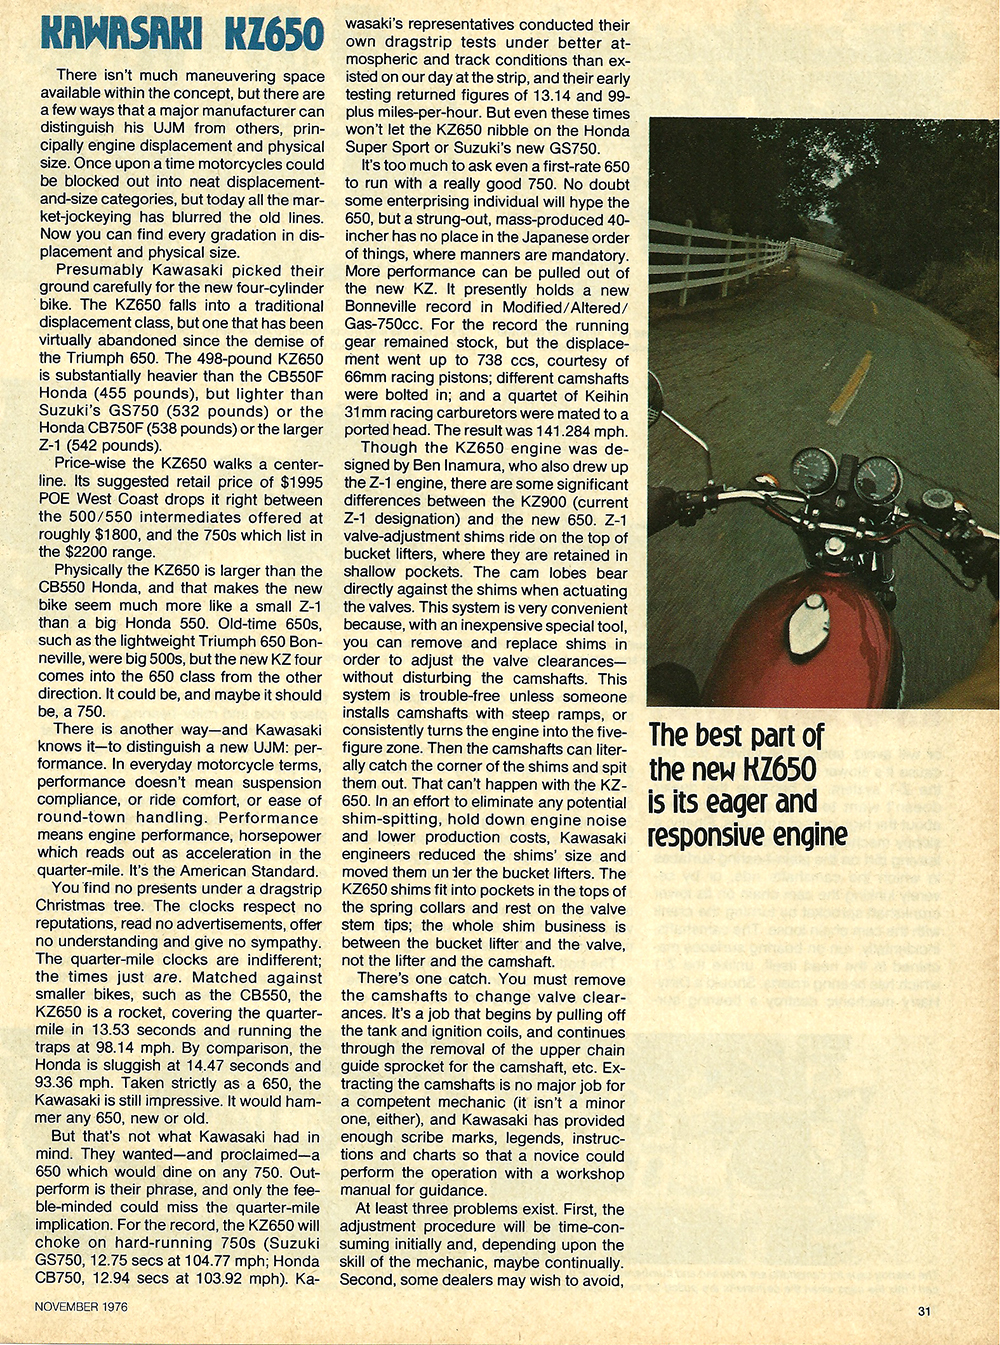 1976 Kawasaki KZ650 road test 04.jpg